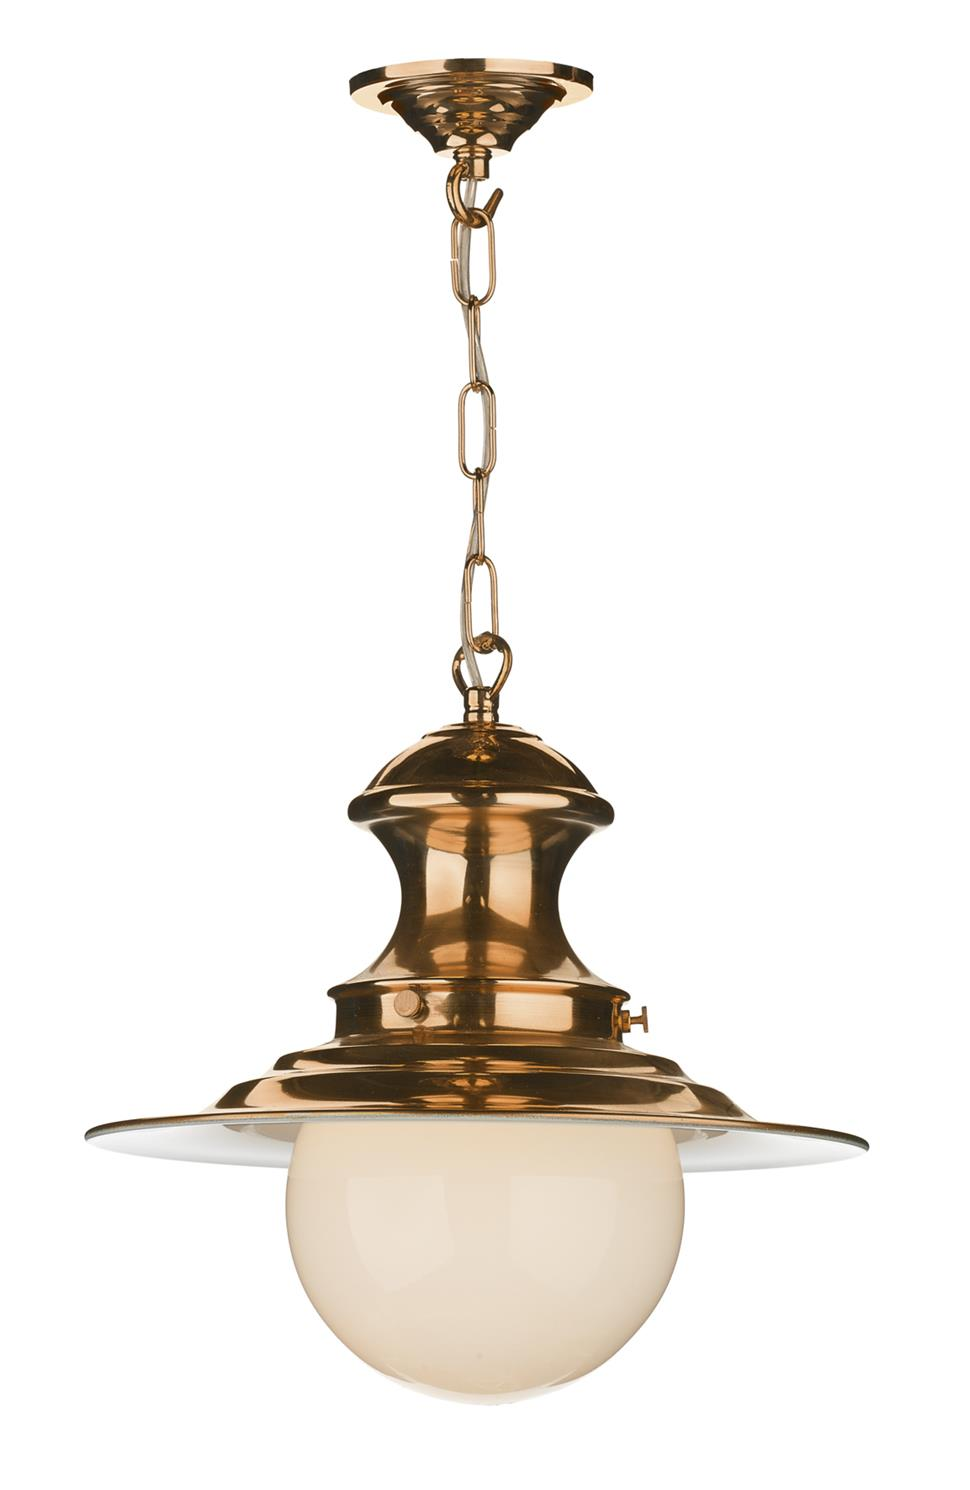 David Hunt Lighting EP0164 Station Small Single Pendant in Copper